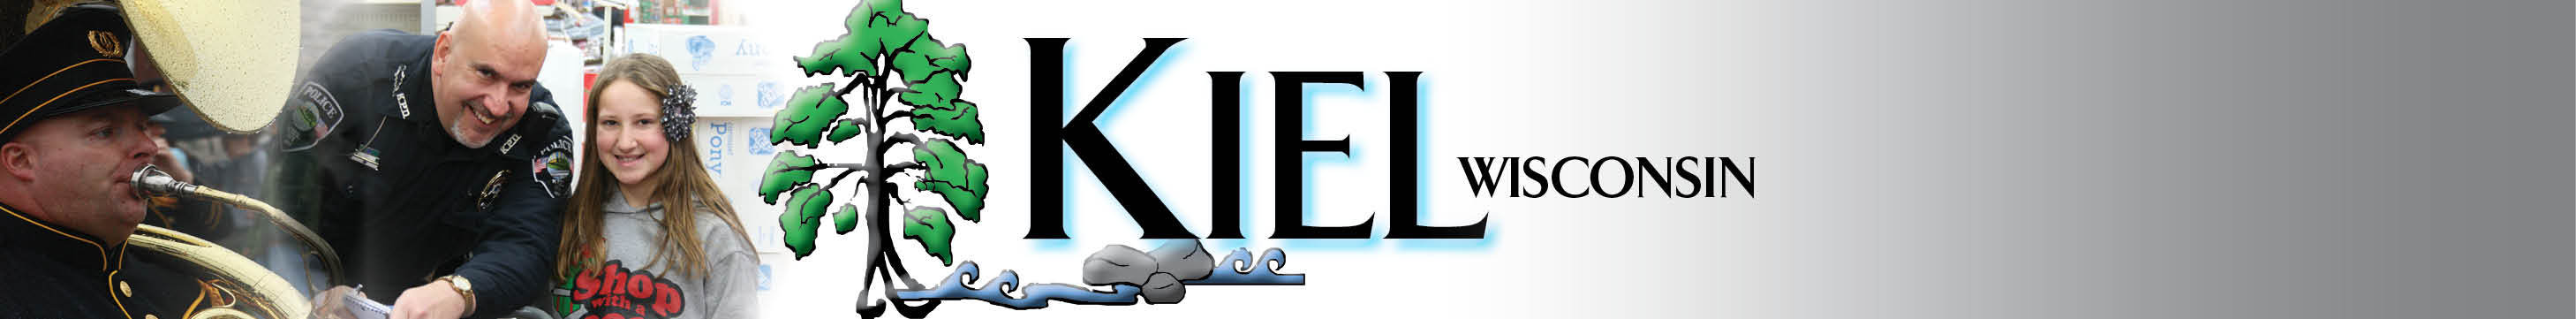 City of Kiel